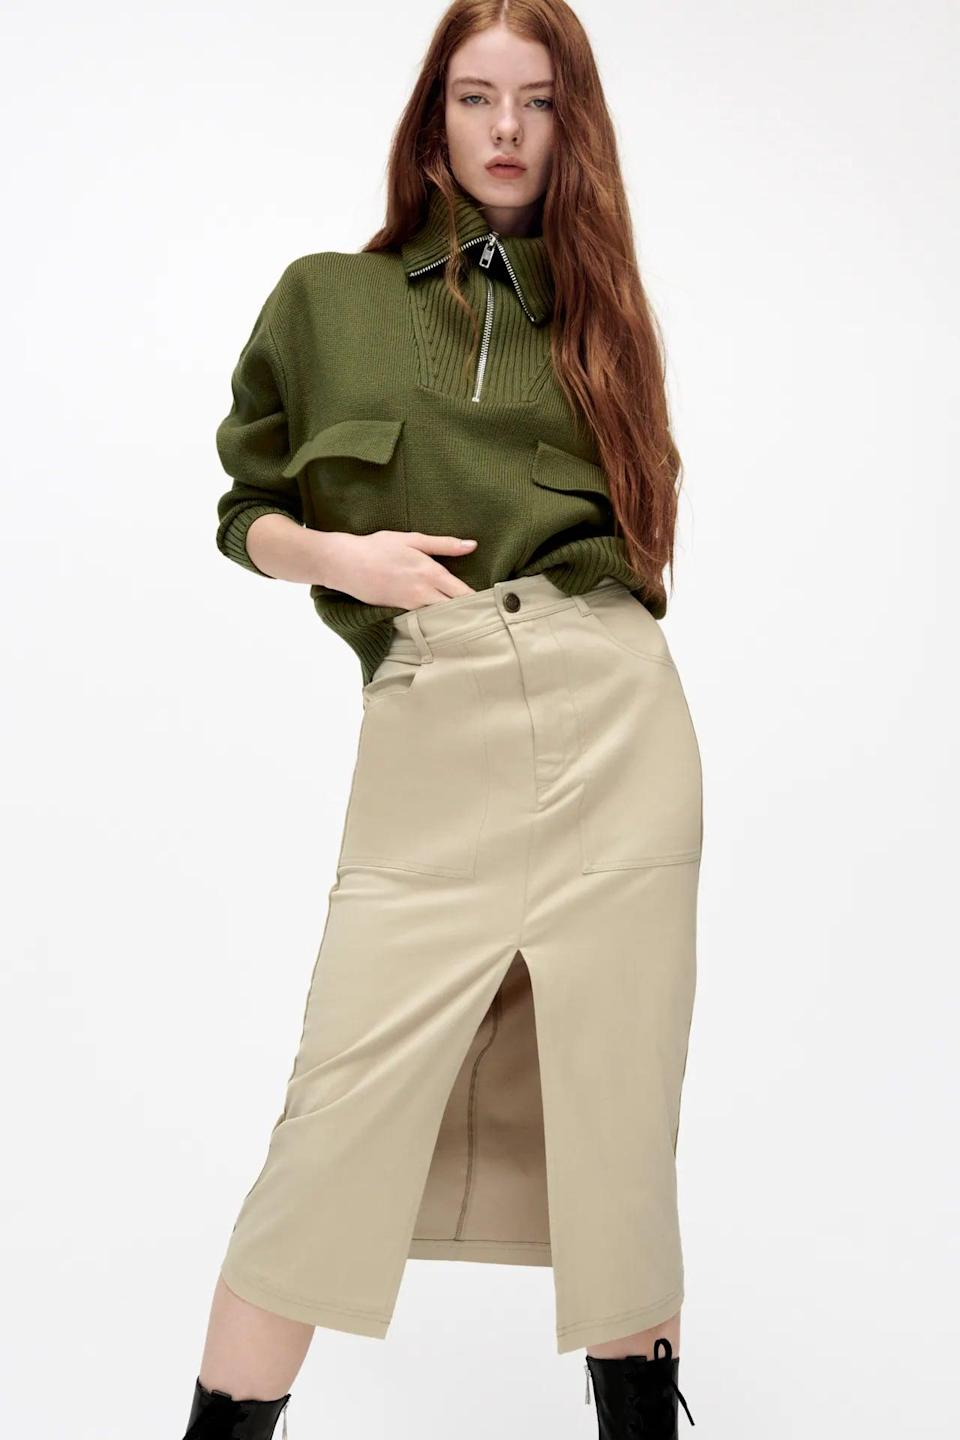 <p>This <span>Straight Cut Midi Skirt</span> ($40) is professional enough for the office, but you can easily edge it up for nighttime wear. Just swap the long-sleeved top with a fitted bustier bodysuit and you'll transform into the sexiest person in the room.</p>